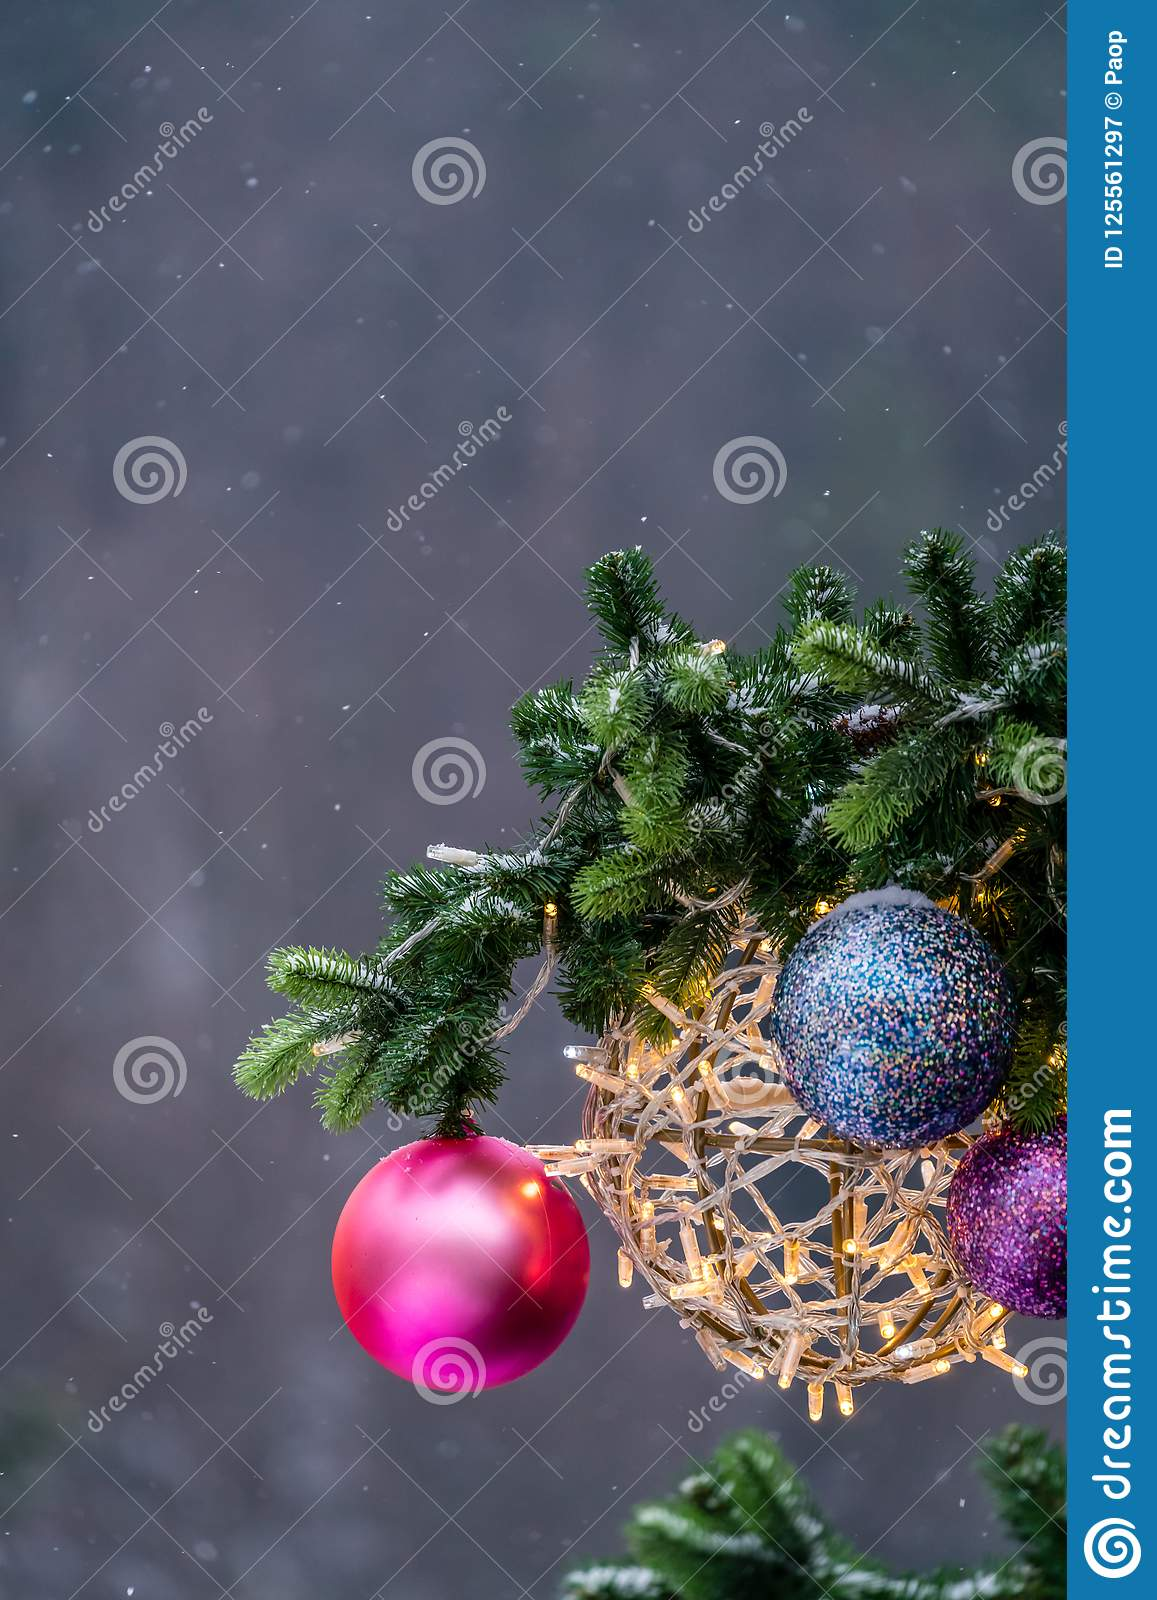 download christmas tree colorful decorations stock image image of falling decorations 125561297 - Colorful Christmas Decorations